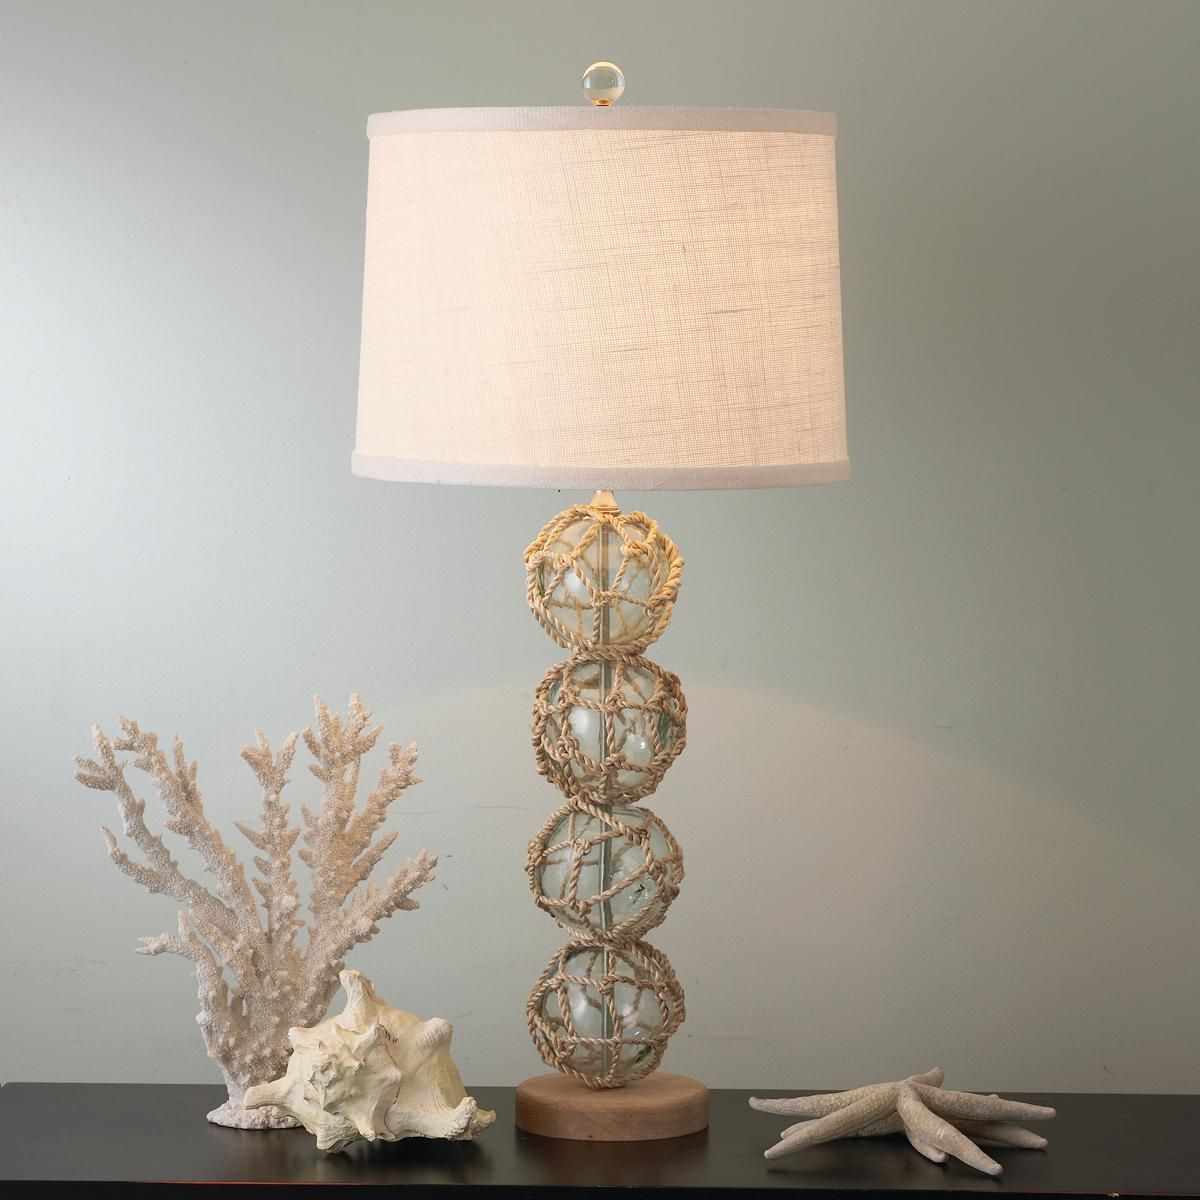 Nautical rope and glass ball table lamp nautical rope glass and nautical rope and glass ball table lamp geotapseo Choice Image